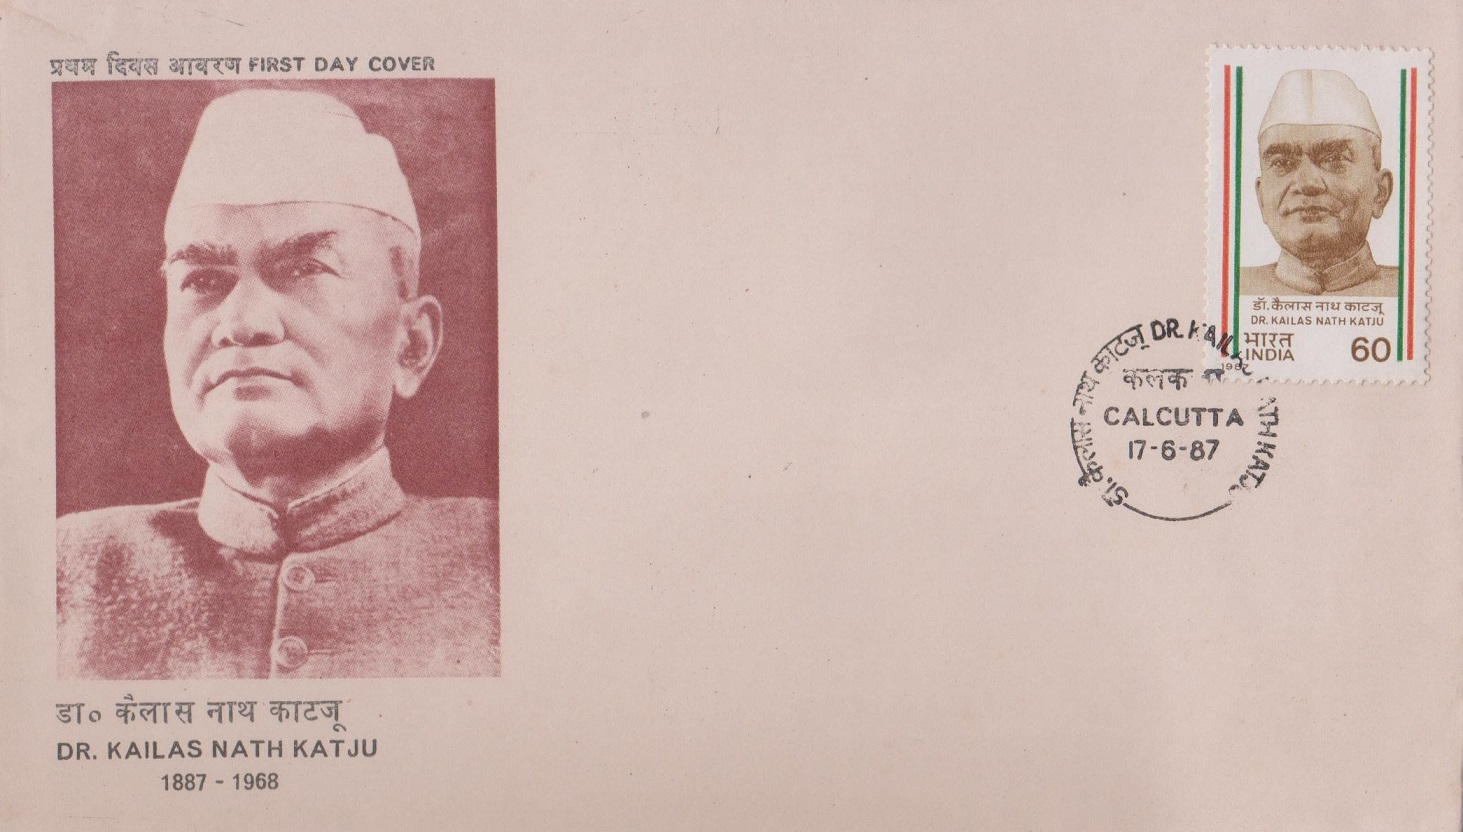 Union Home Minister (1951-55) and Union Defence Minister (1955-57)